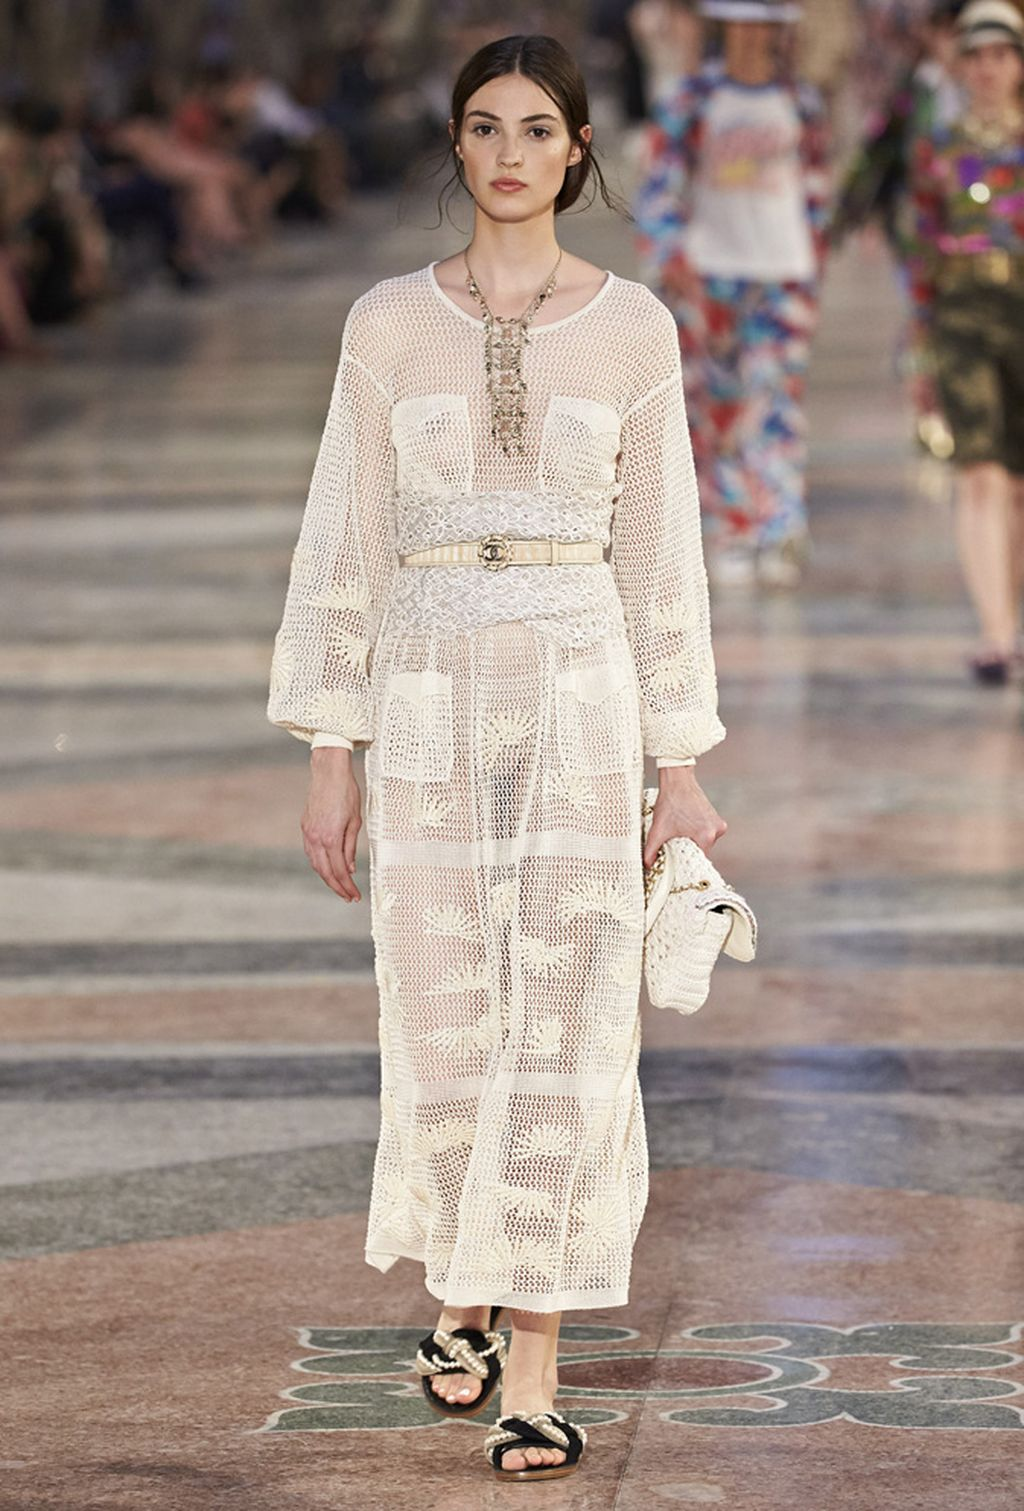 Chanel Cruise 2016/17 collection - fashion show | AGA'S SUITCASE